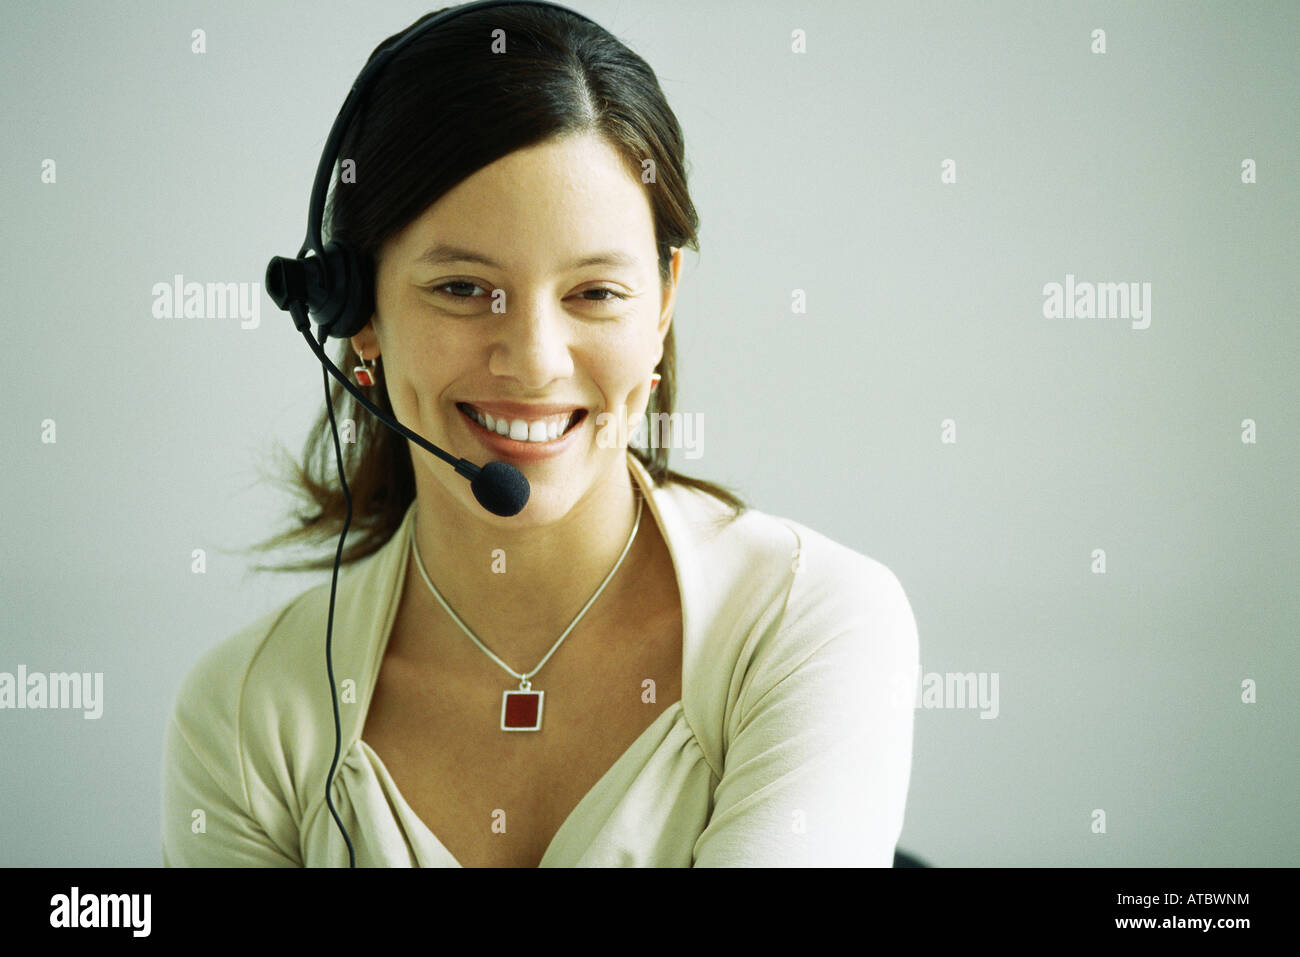 Woman wearing headset, smiling at camera, portrait - Stock Image